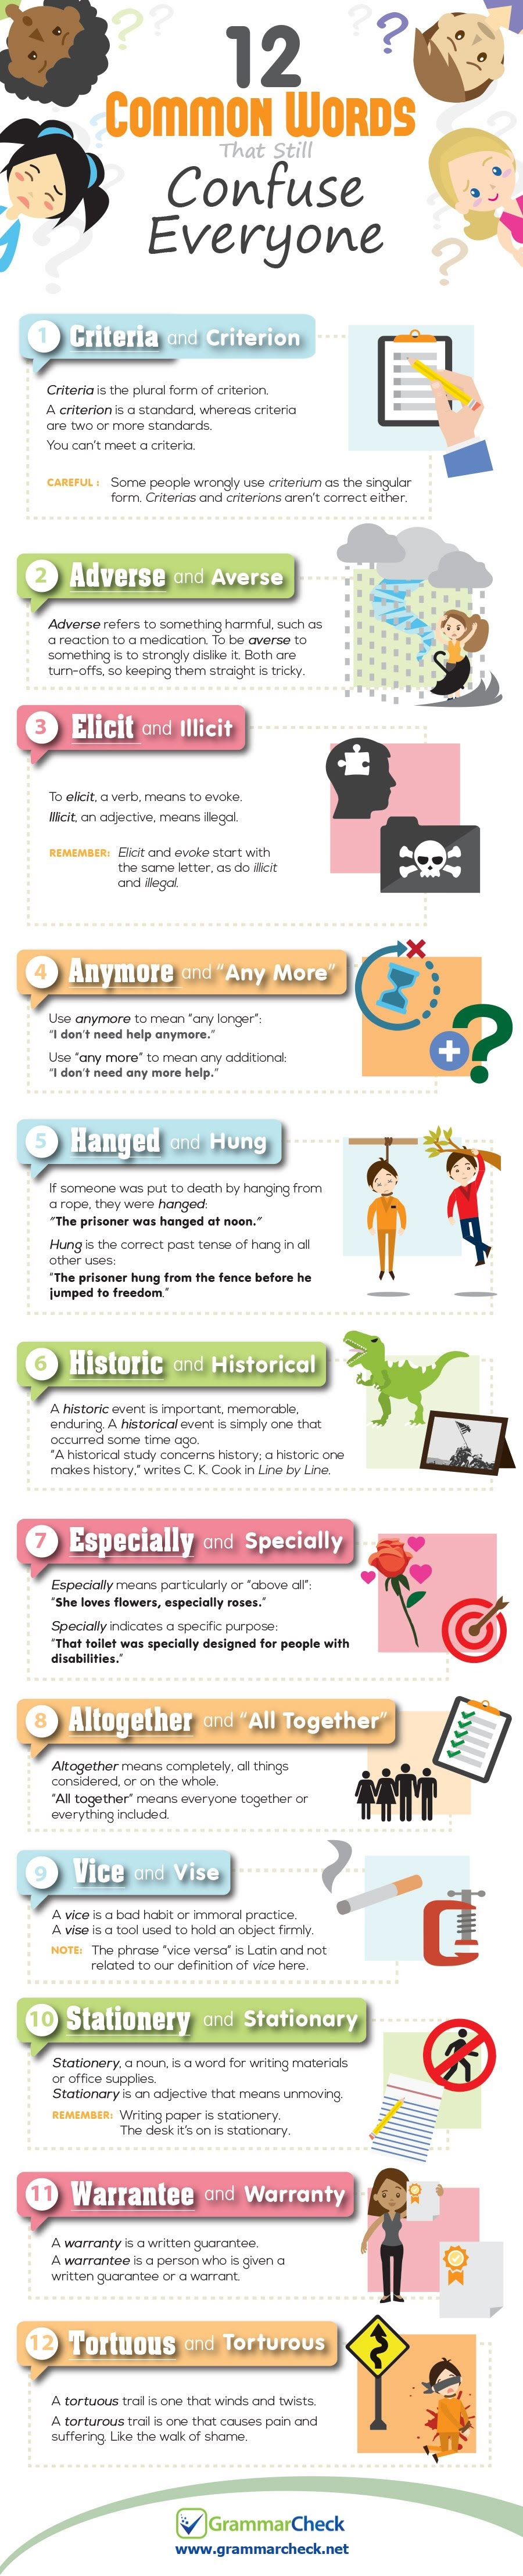 12 Common Words That Still Confuse Everyone #Infographic